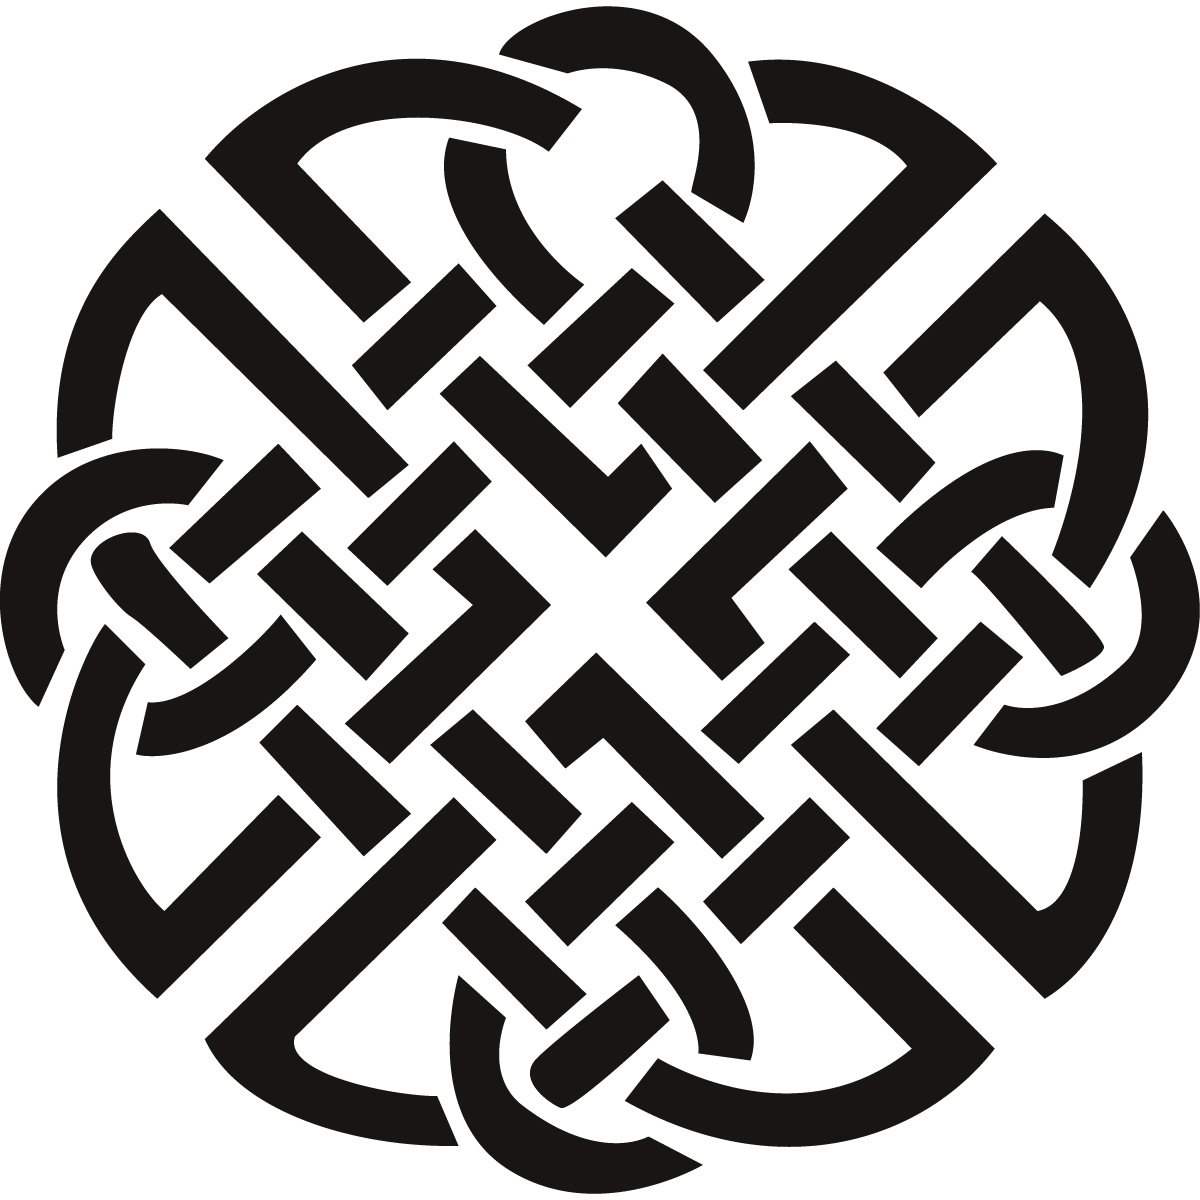 I went looking for celtic knot designs to decorate a nordic build